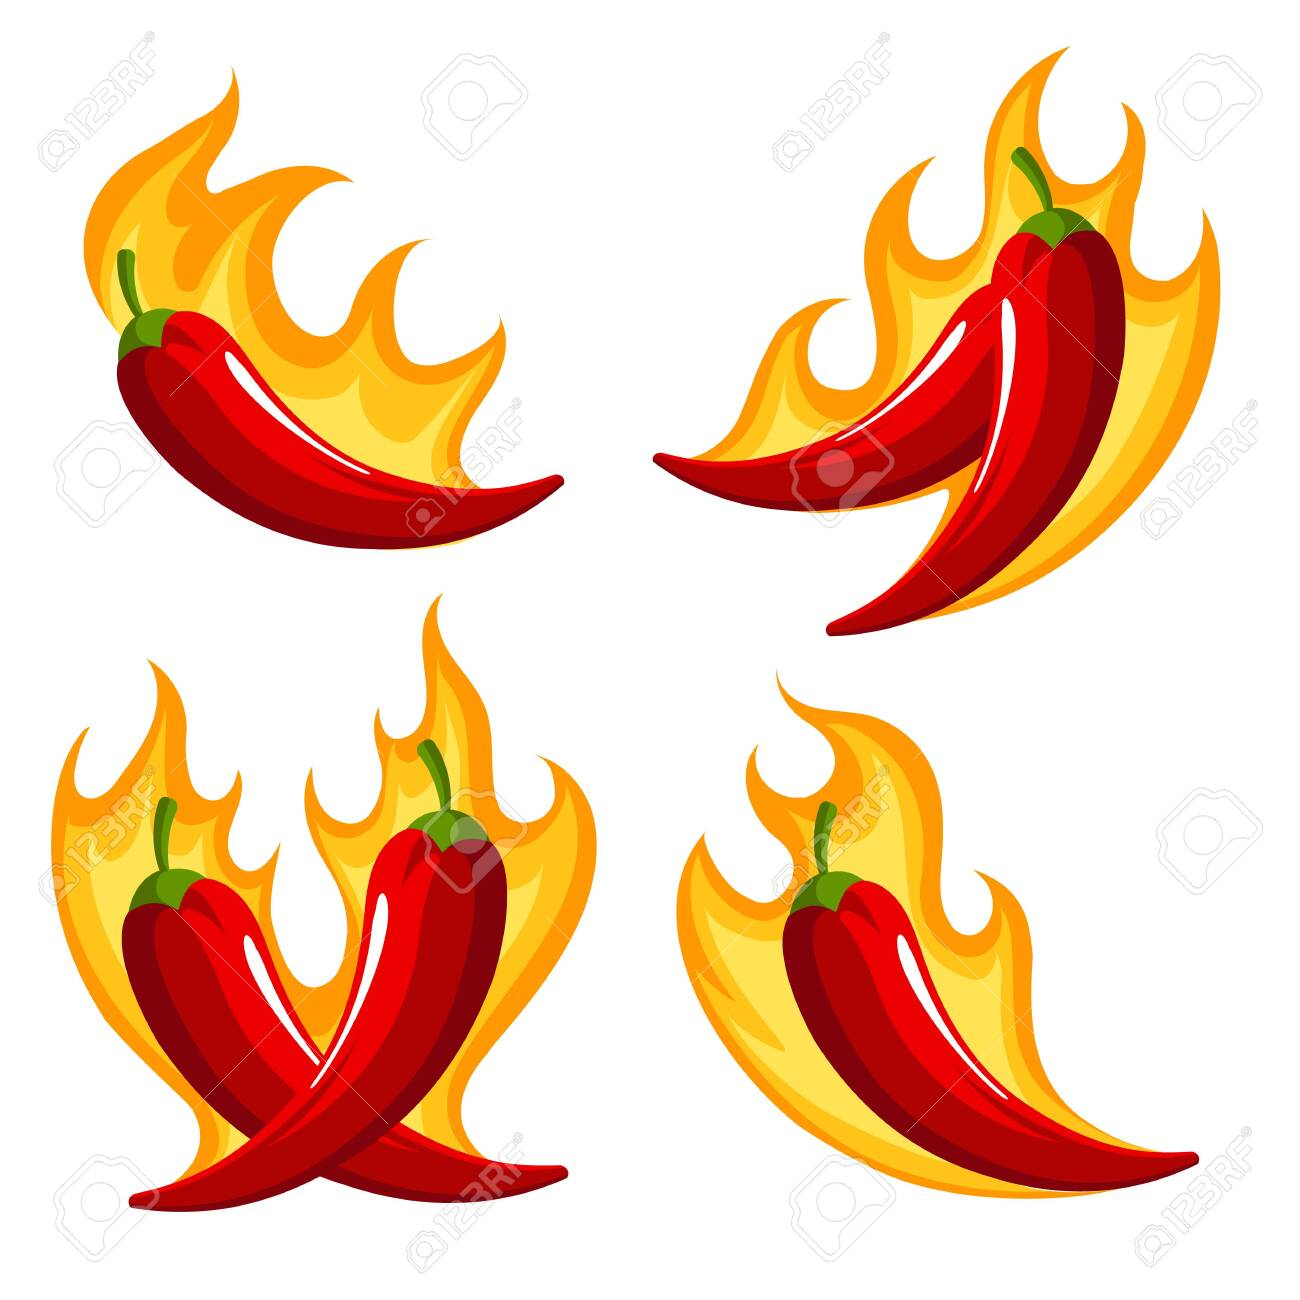 Set of Red Chili Peppers Emblems on Fire isolated on white. - 147021520